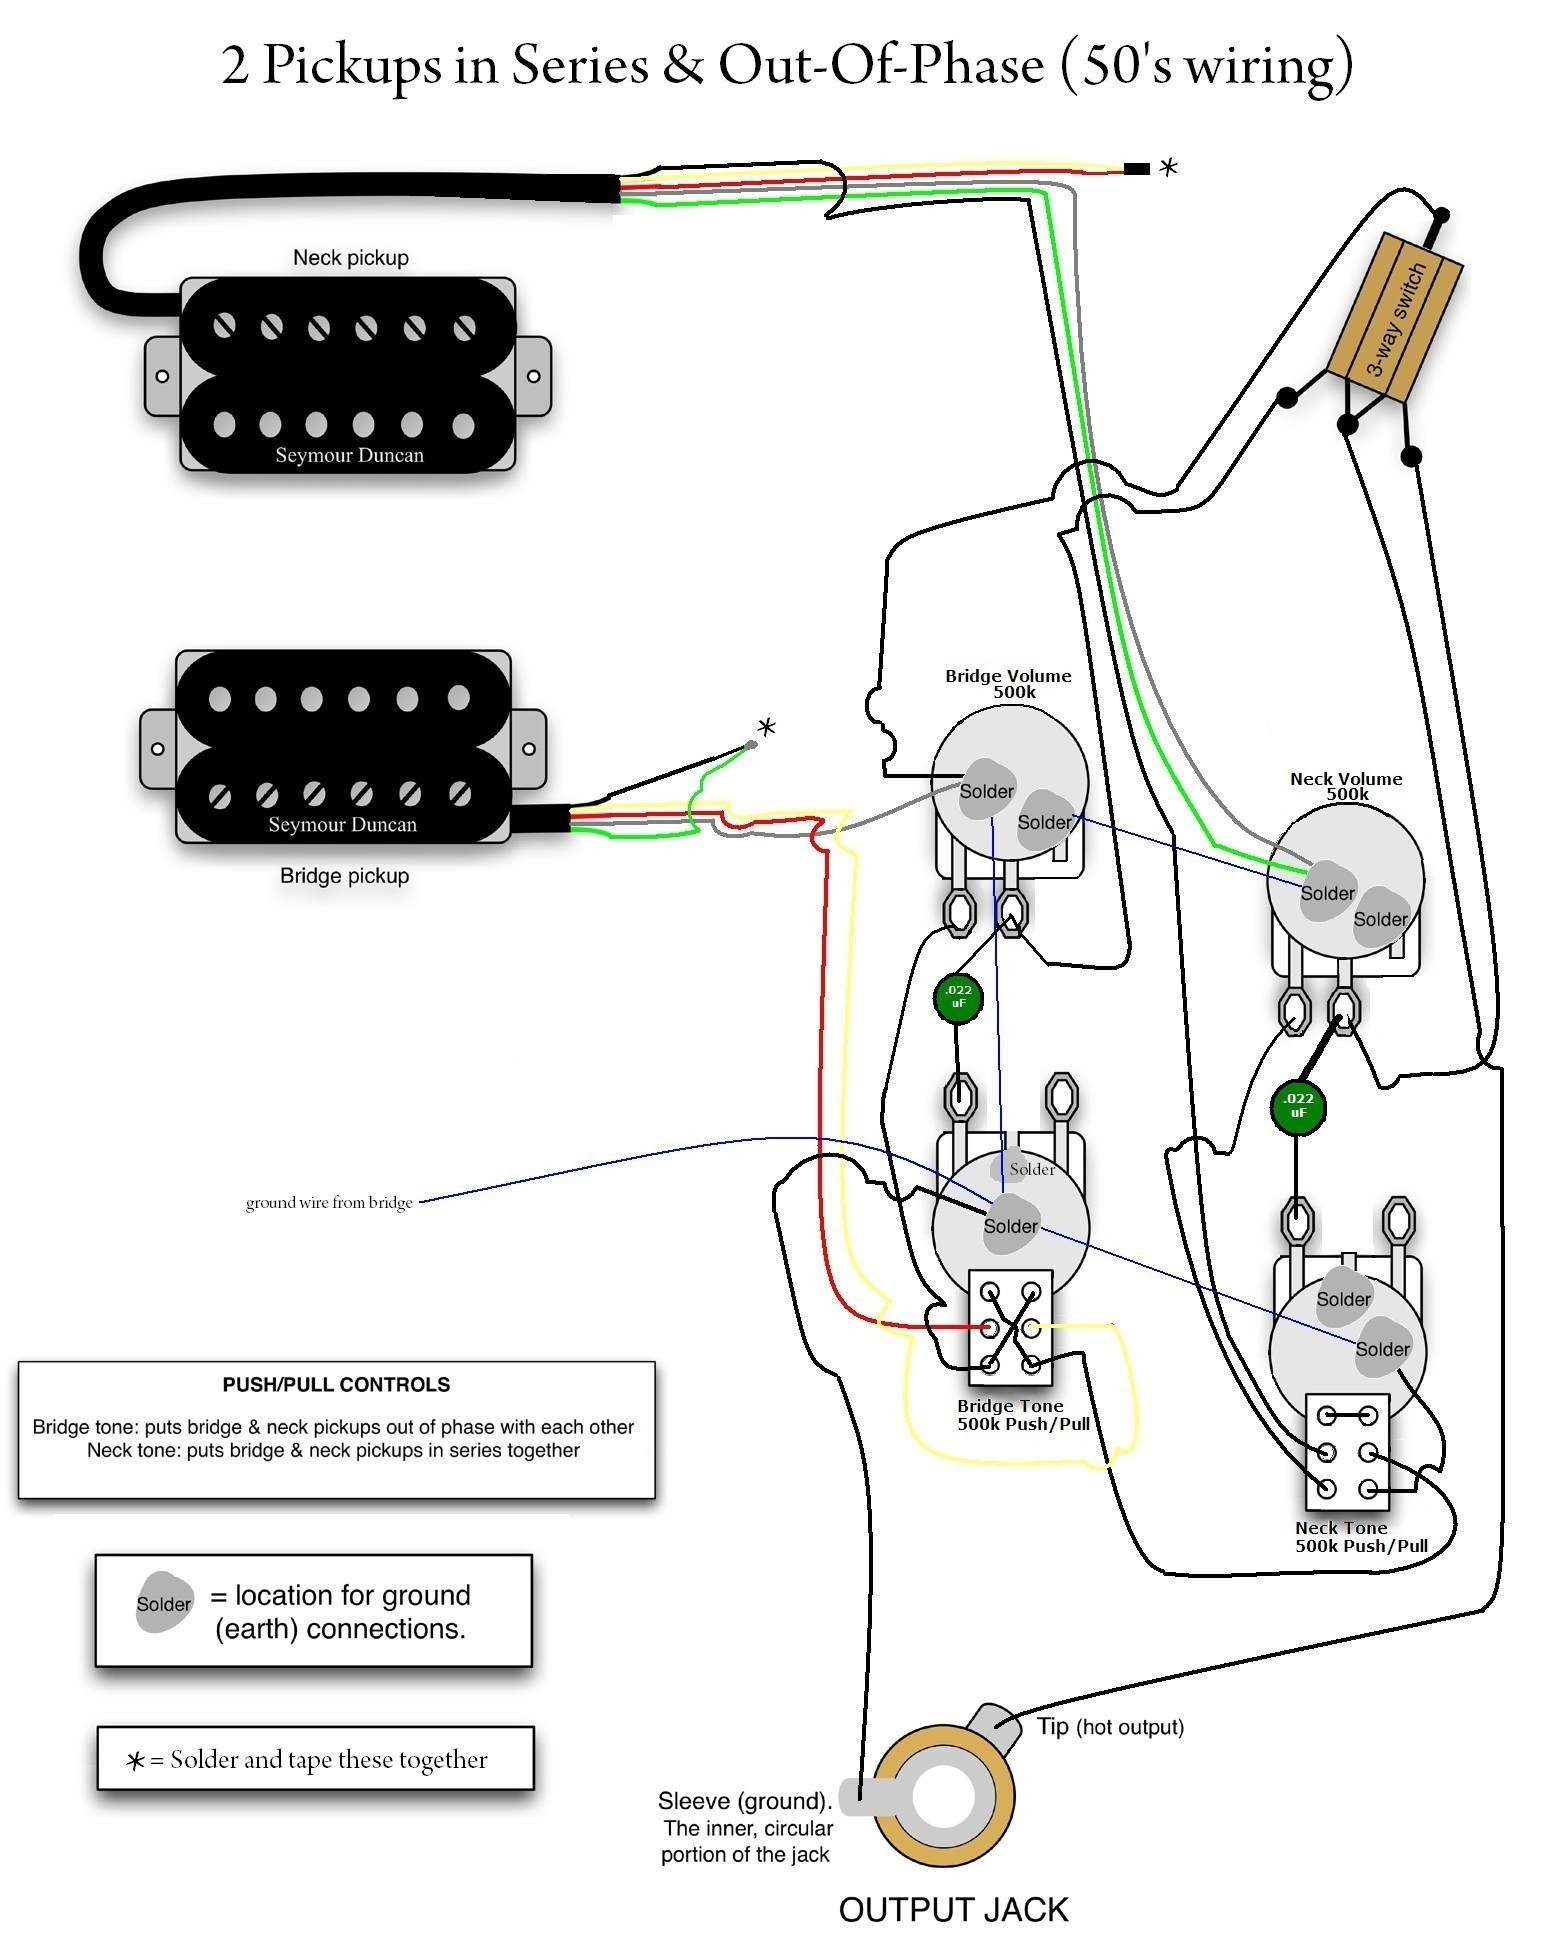 gibson les paul wiring schematic Collection-50s Wiring Diagram Les Paul Valid 50s Wiring Diagram Les Paul Save Wiring Diagram Gibson Les 13-o